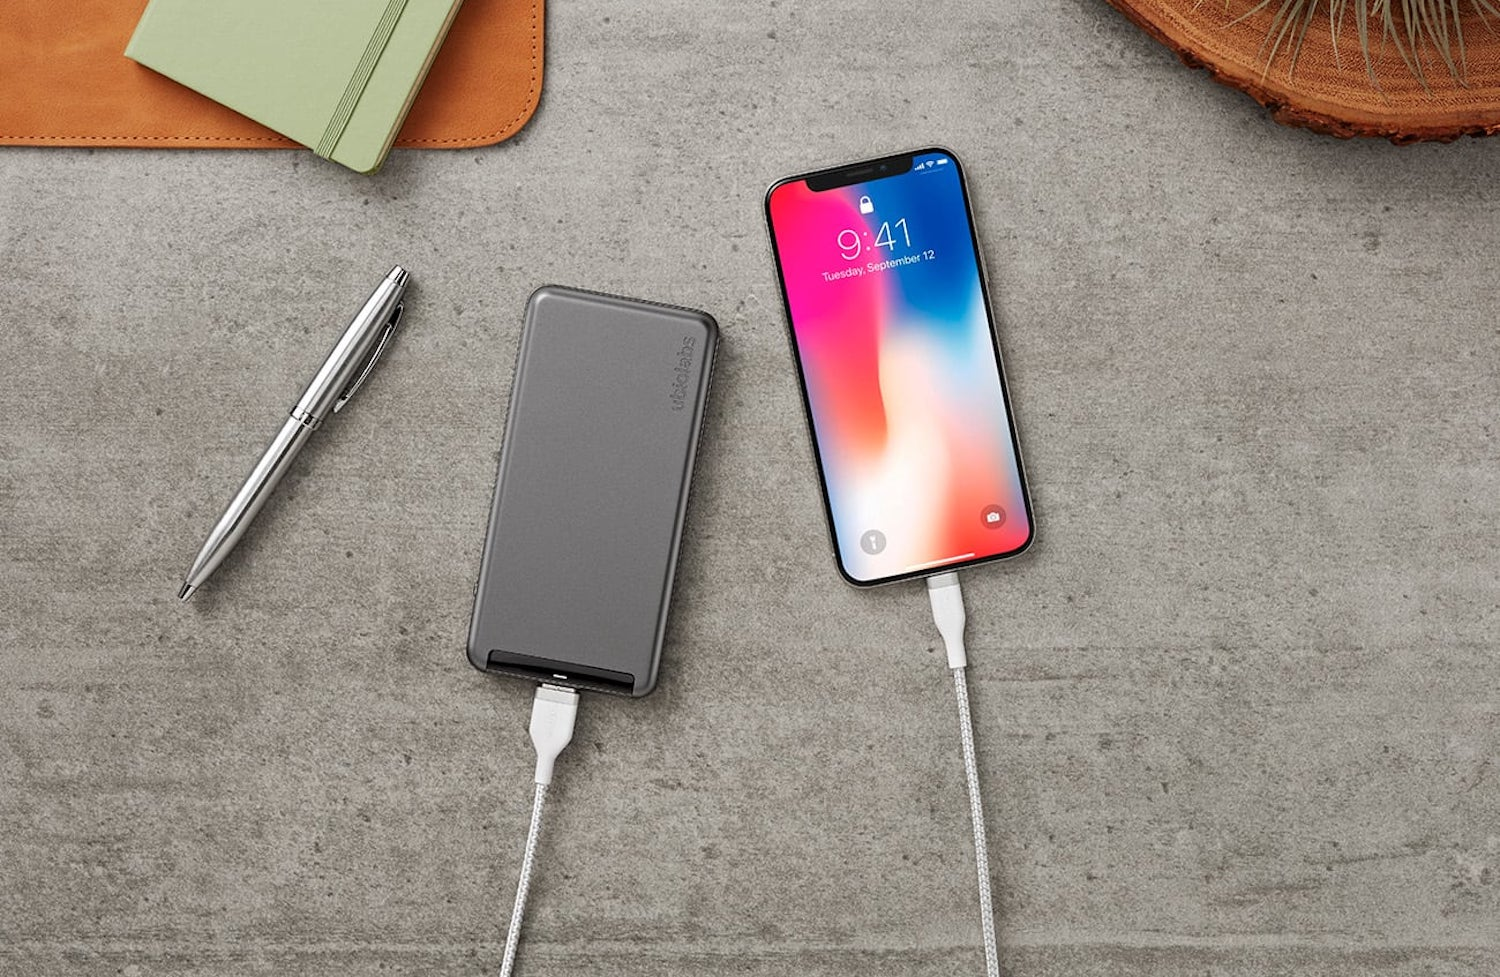 The best iPhone power bank for your summer vacation